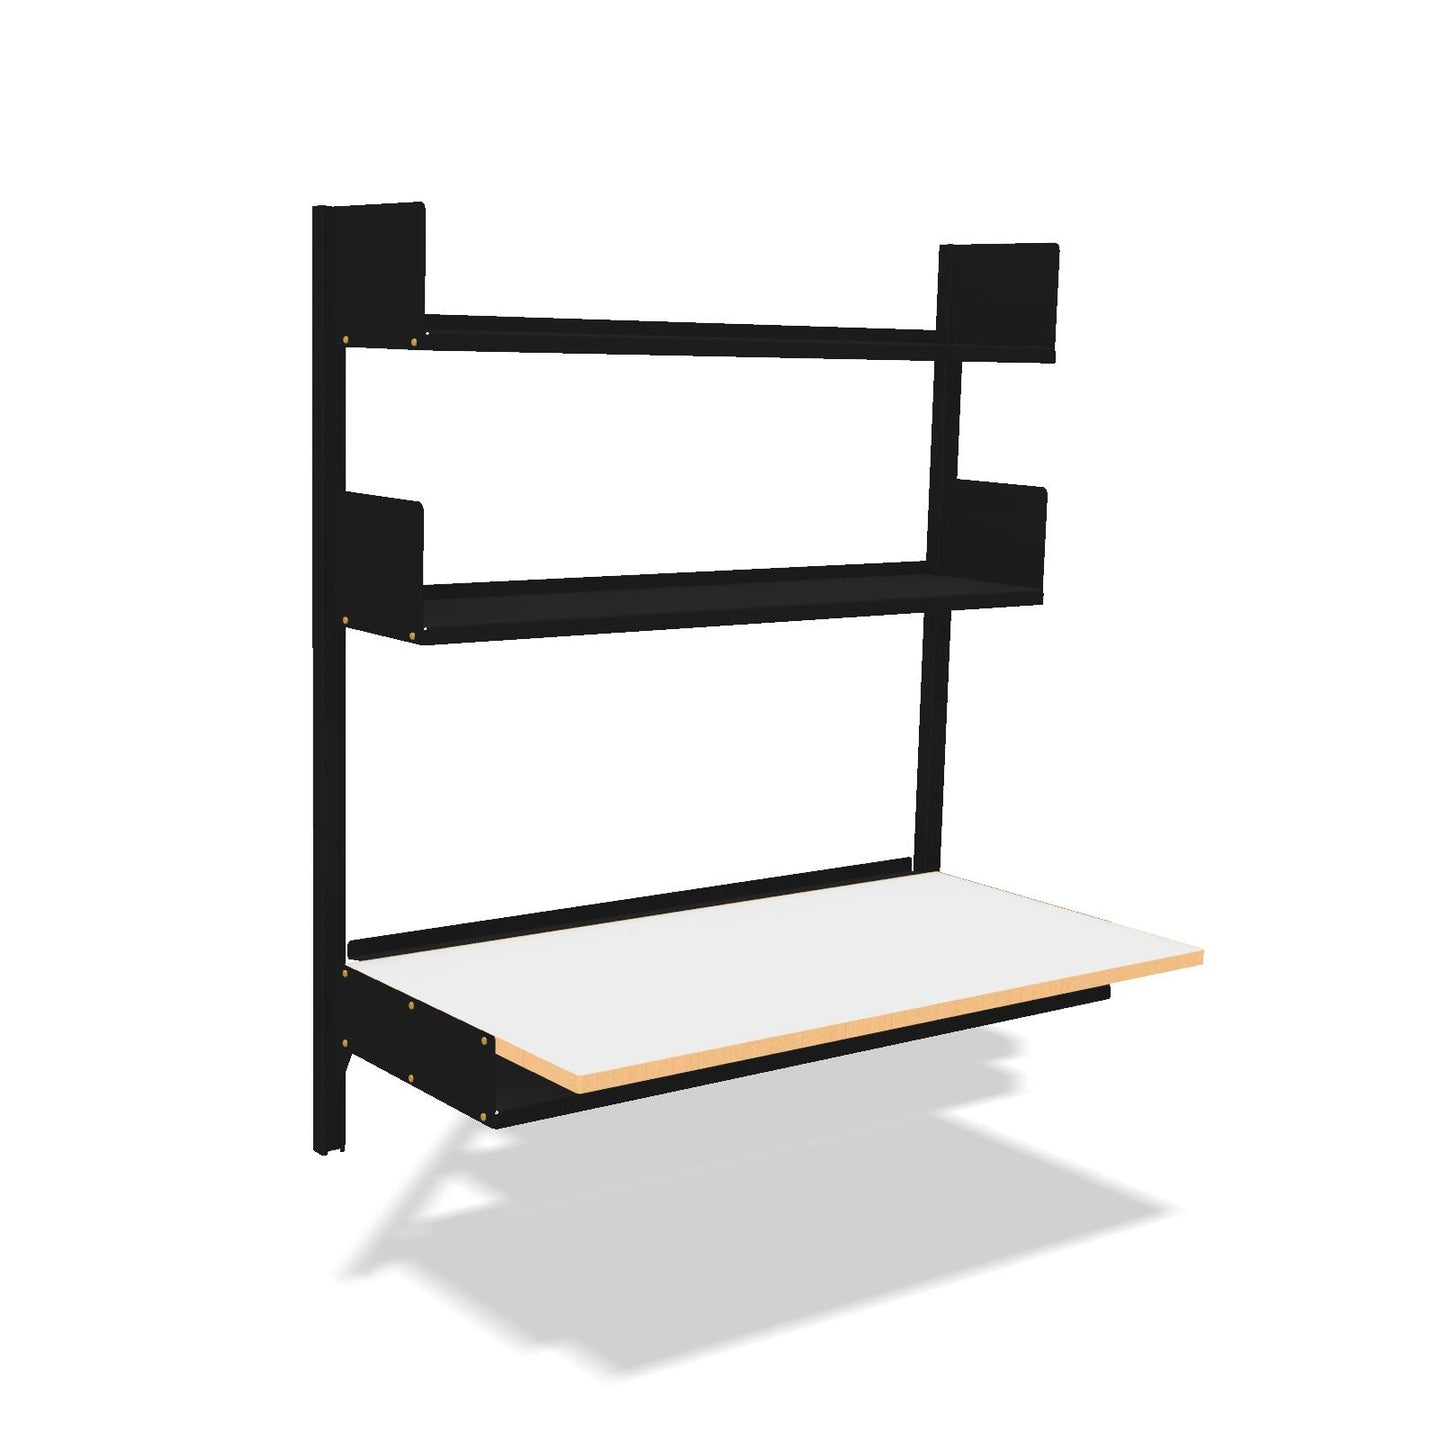 smpl. Shelving and Desk Kit